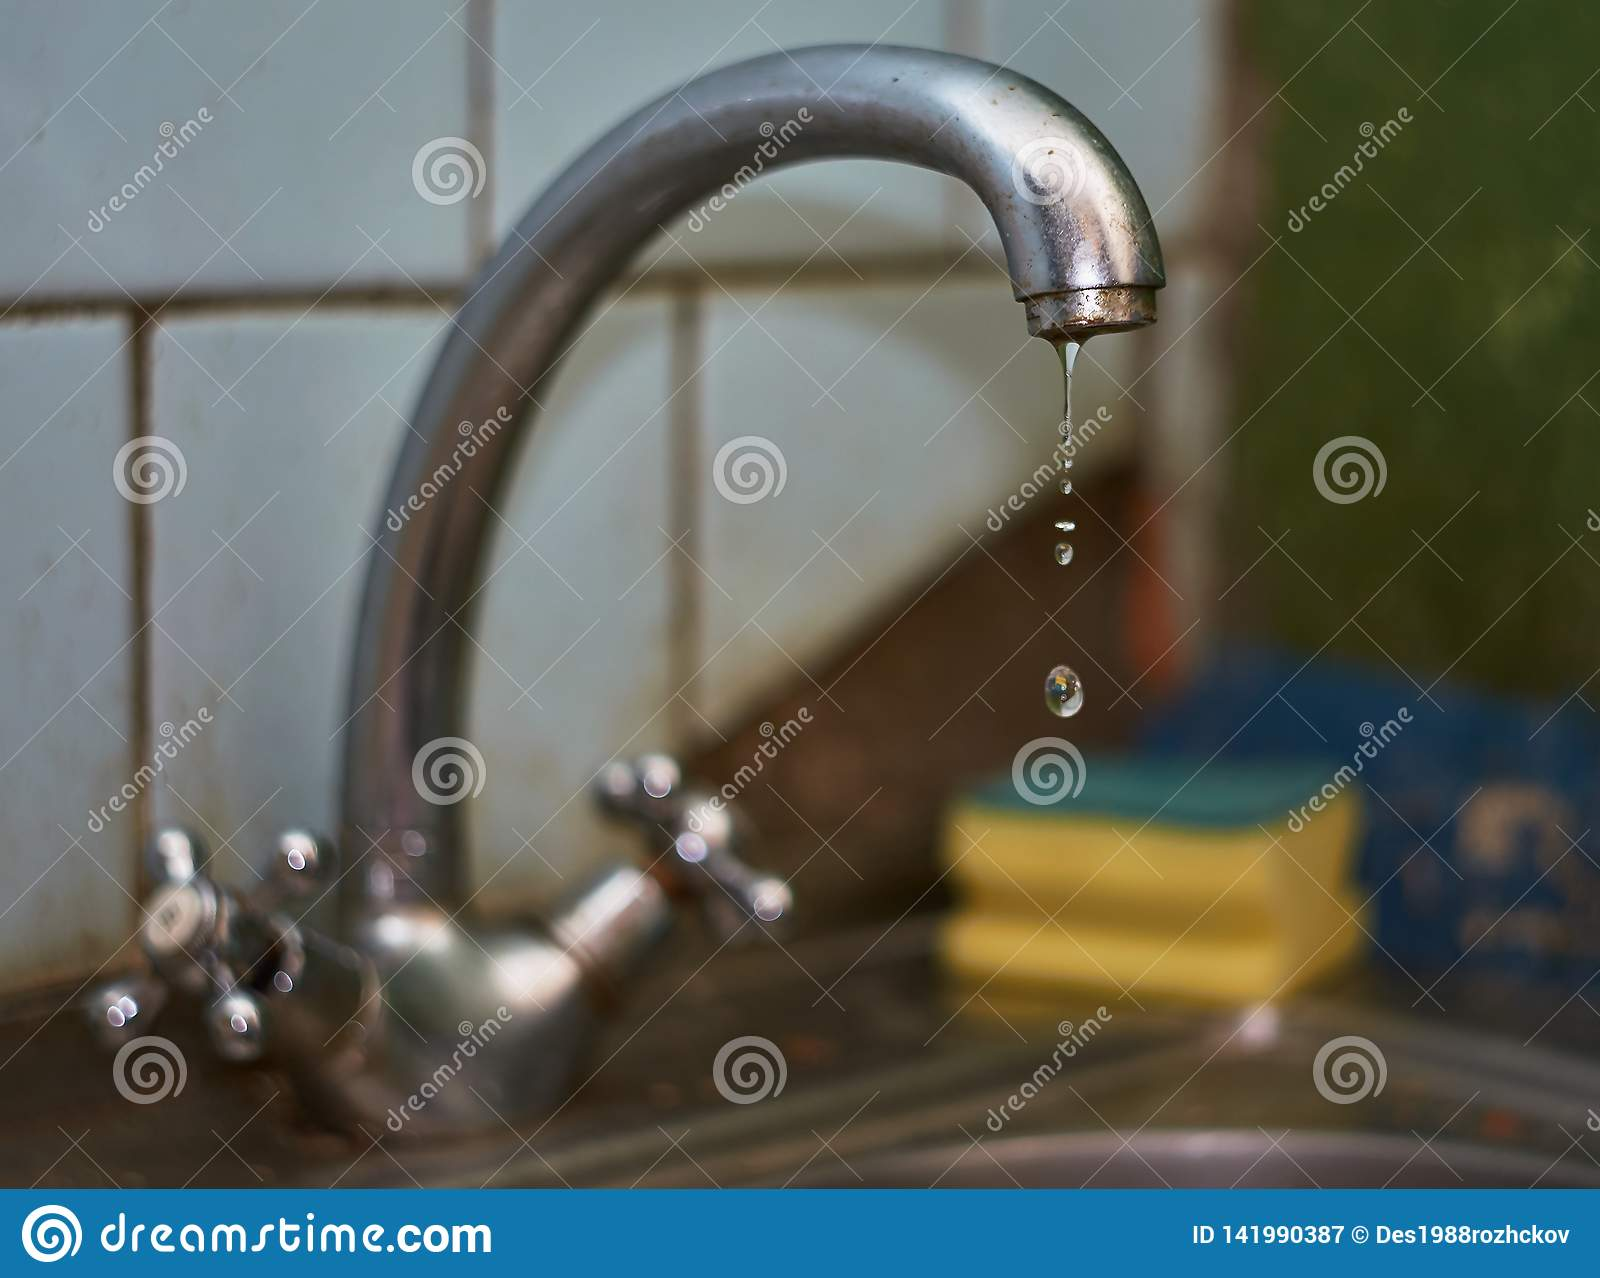 Old Dripping Kitchen Faucet Close Up Stock Image - Image of ...